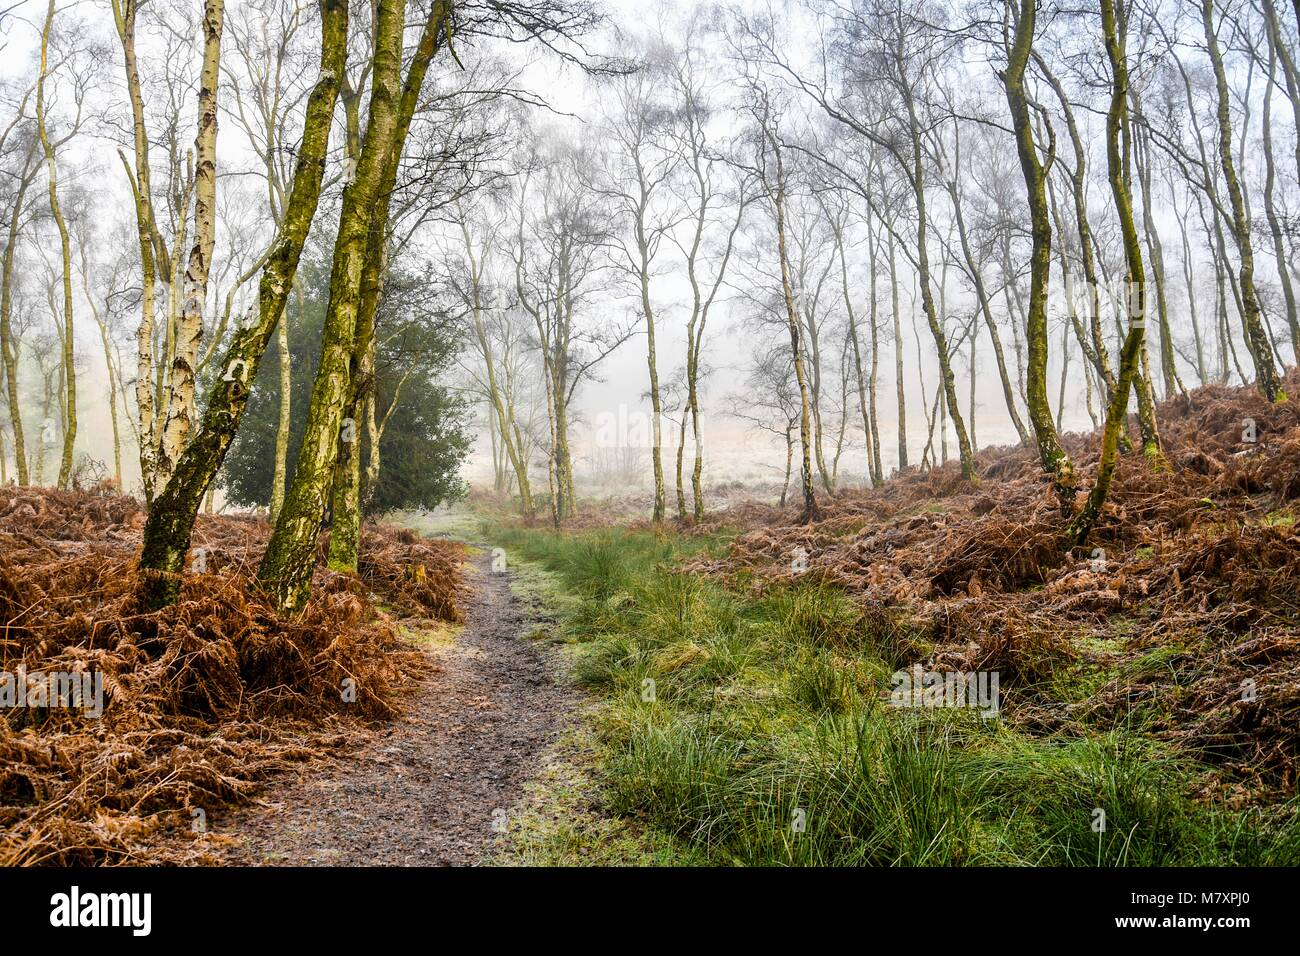 Mystical winter woodland in the middle of winter on Cannock Chase in the UK - Stock Image